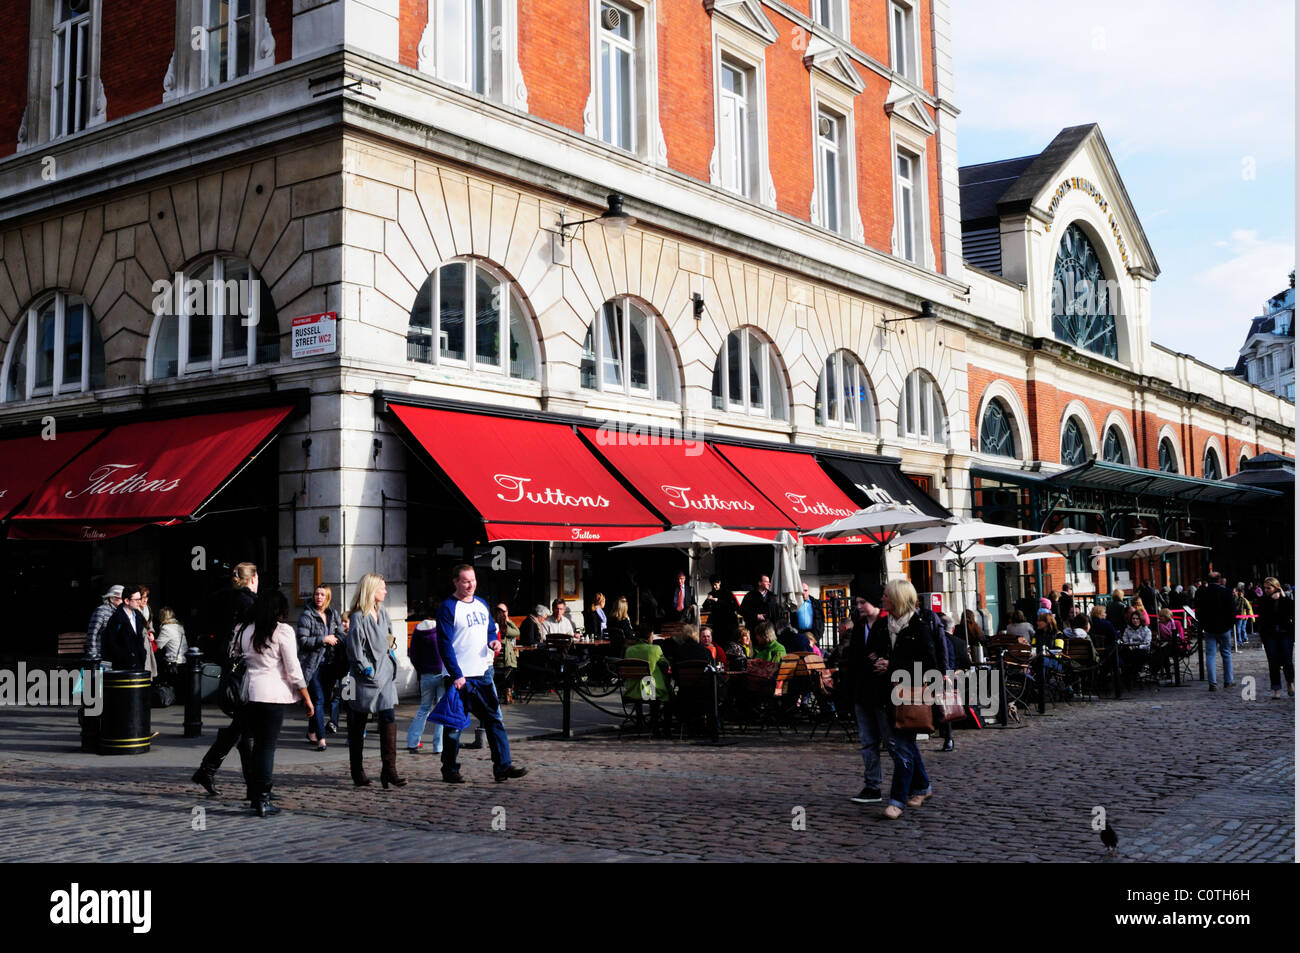 Winsome Brasserie Stock Photos  Brasserie Stock Images  Page   Alamy With Exquisite Tuttons Pavement Cafe Restaurant On Covent Garden Piazza London England  Uk  Stock With Delightful Garden Art Plus Also Vandusen Botanical Garden Hours In Addition Garden Office Sale And Garden Planters As Well As How Much Does Garden Clearance Cost Additionally Organic Farming And Gardening From Alamycom With   Exquisite Brasserie Stock Photos  Brasserie Stock Images  Page   Alamy With Delightful Tuttons Pavement Cafe Restaurant On Covent Garden Piazza London England  Uk  Stock And Winsome Garden Art Plus Also Vandusen Botanical Garden Hours In Addition Garden Office Sale From Alamycom